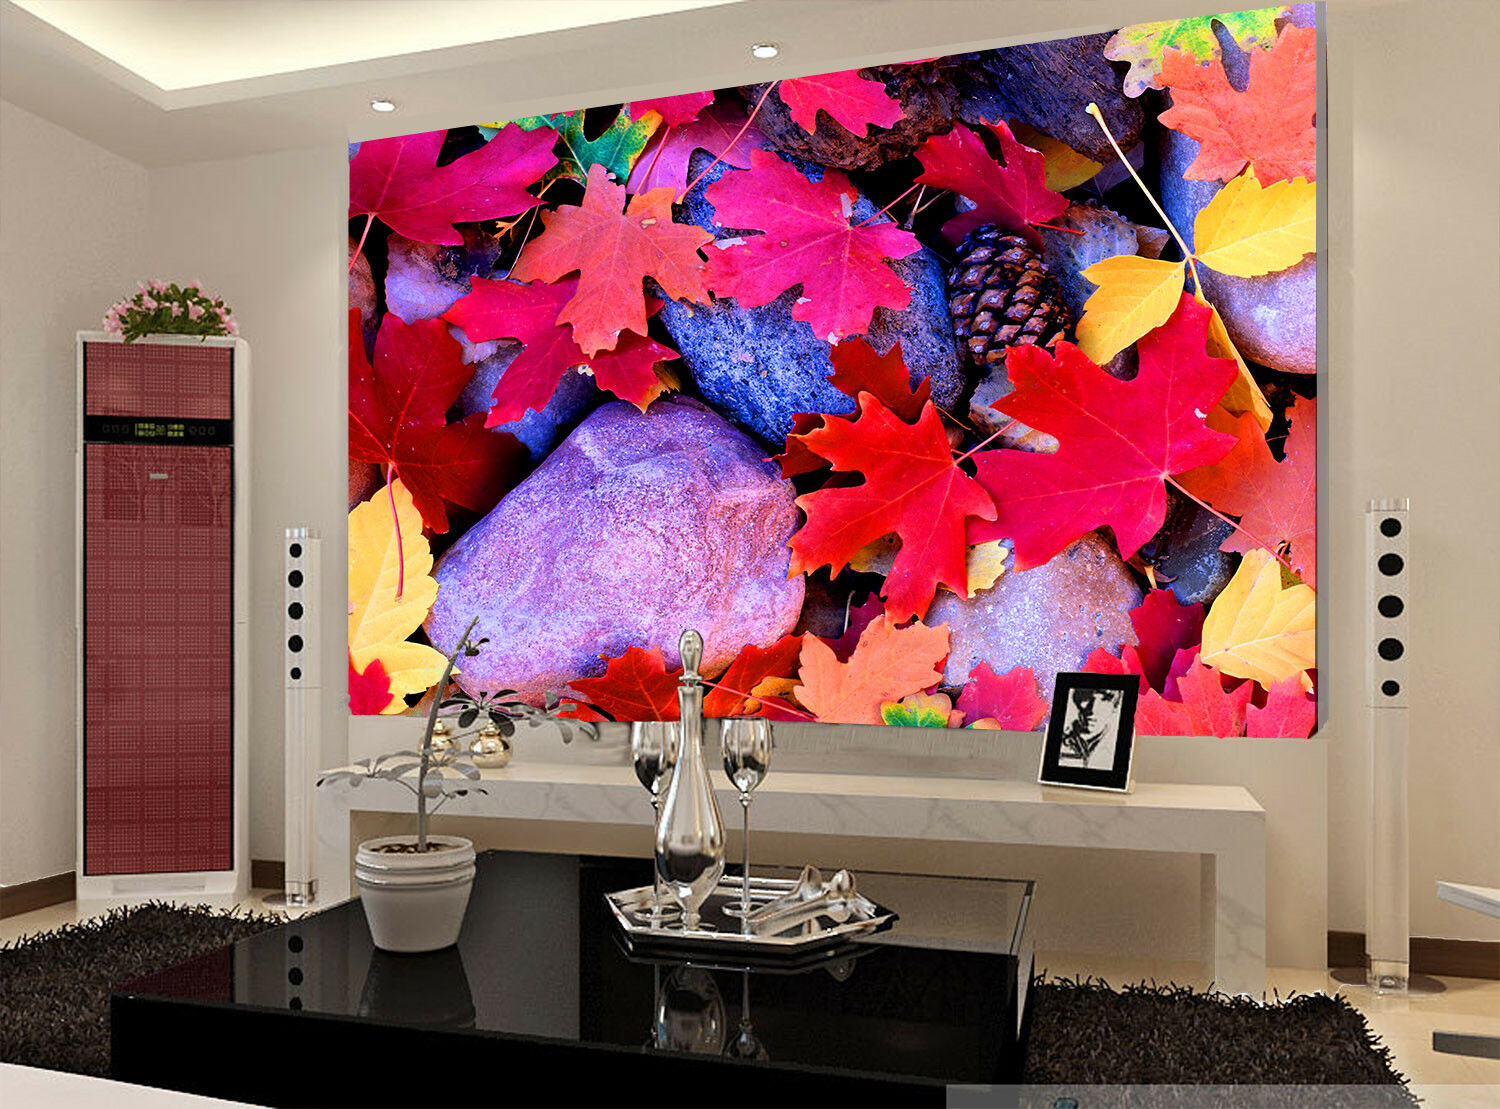 3d Stone Fallen Leaves 74 Wallpaper Mural Wallpaper Wallpaper Picture Family De